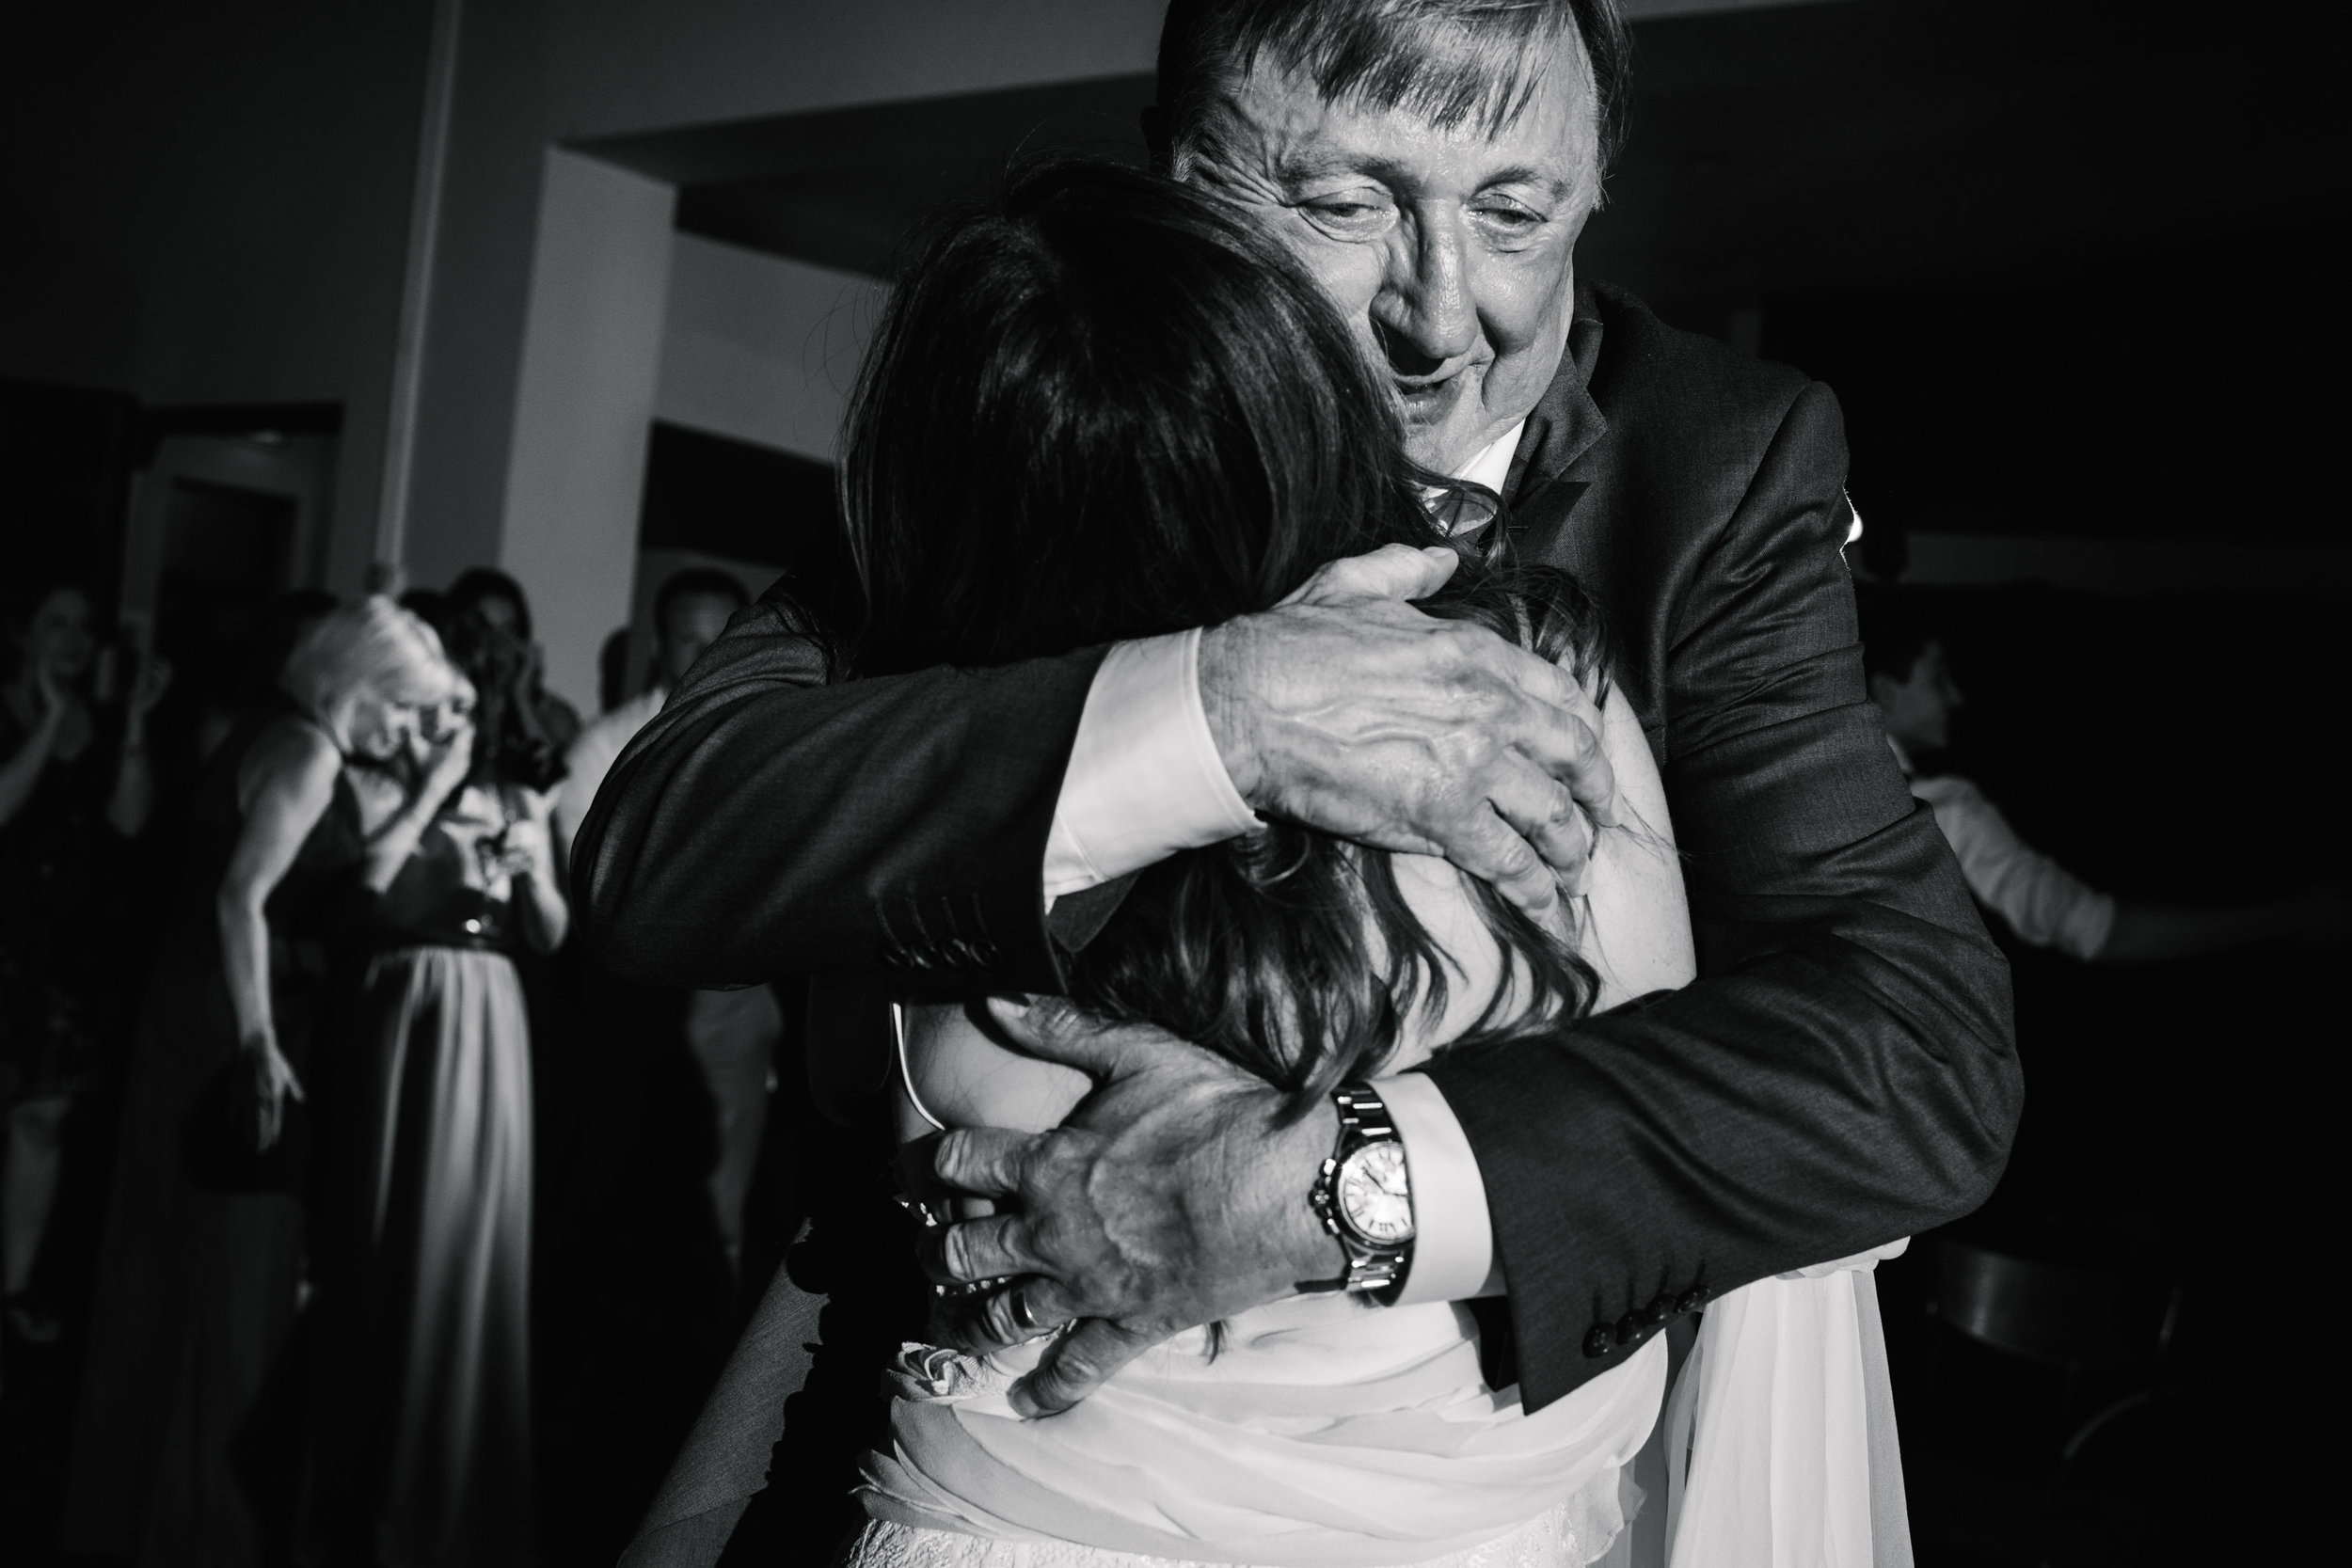 Father hugging daughter and looking emotional during dance